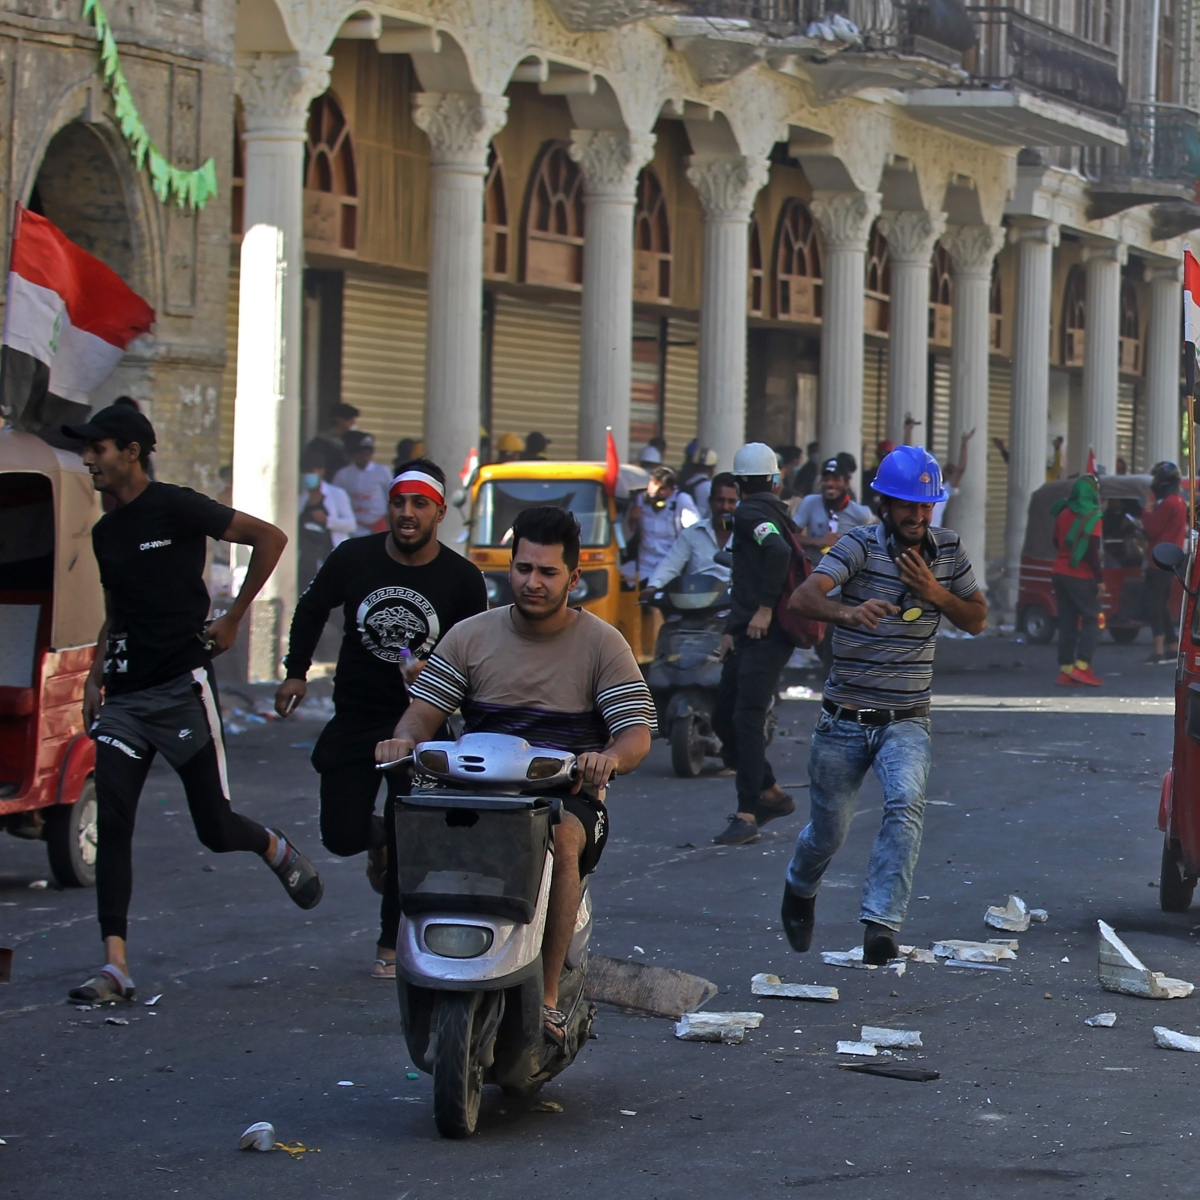 Iraq: Security forces kill several protesters in Baghdad, Basra